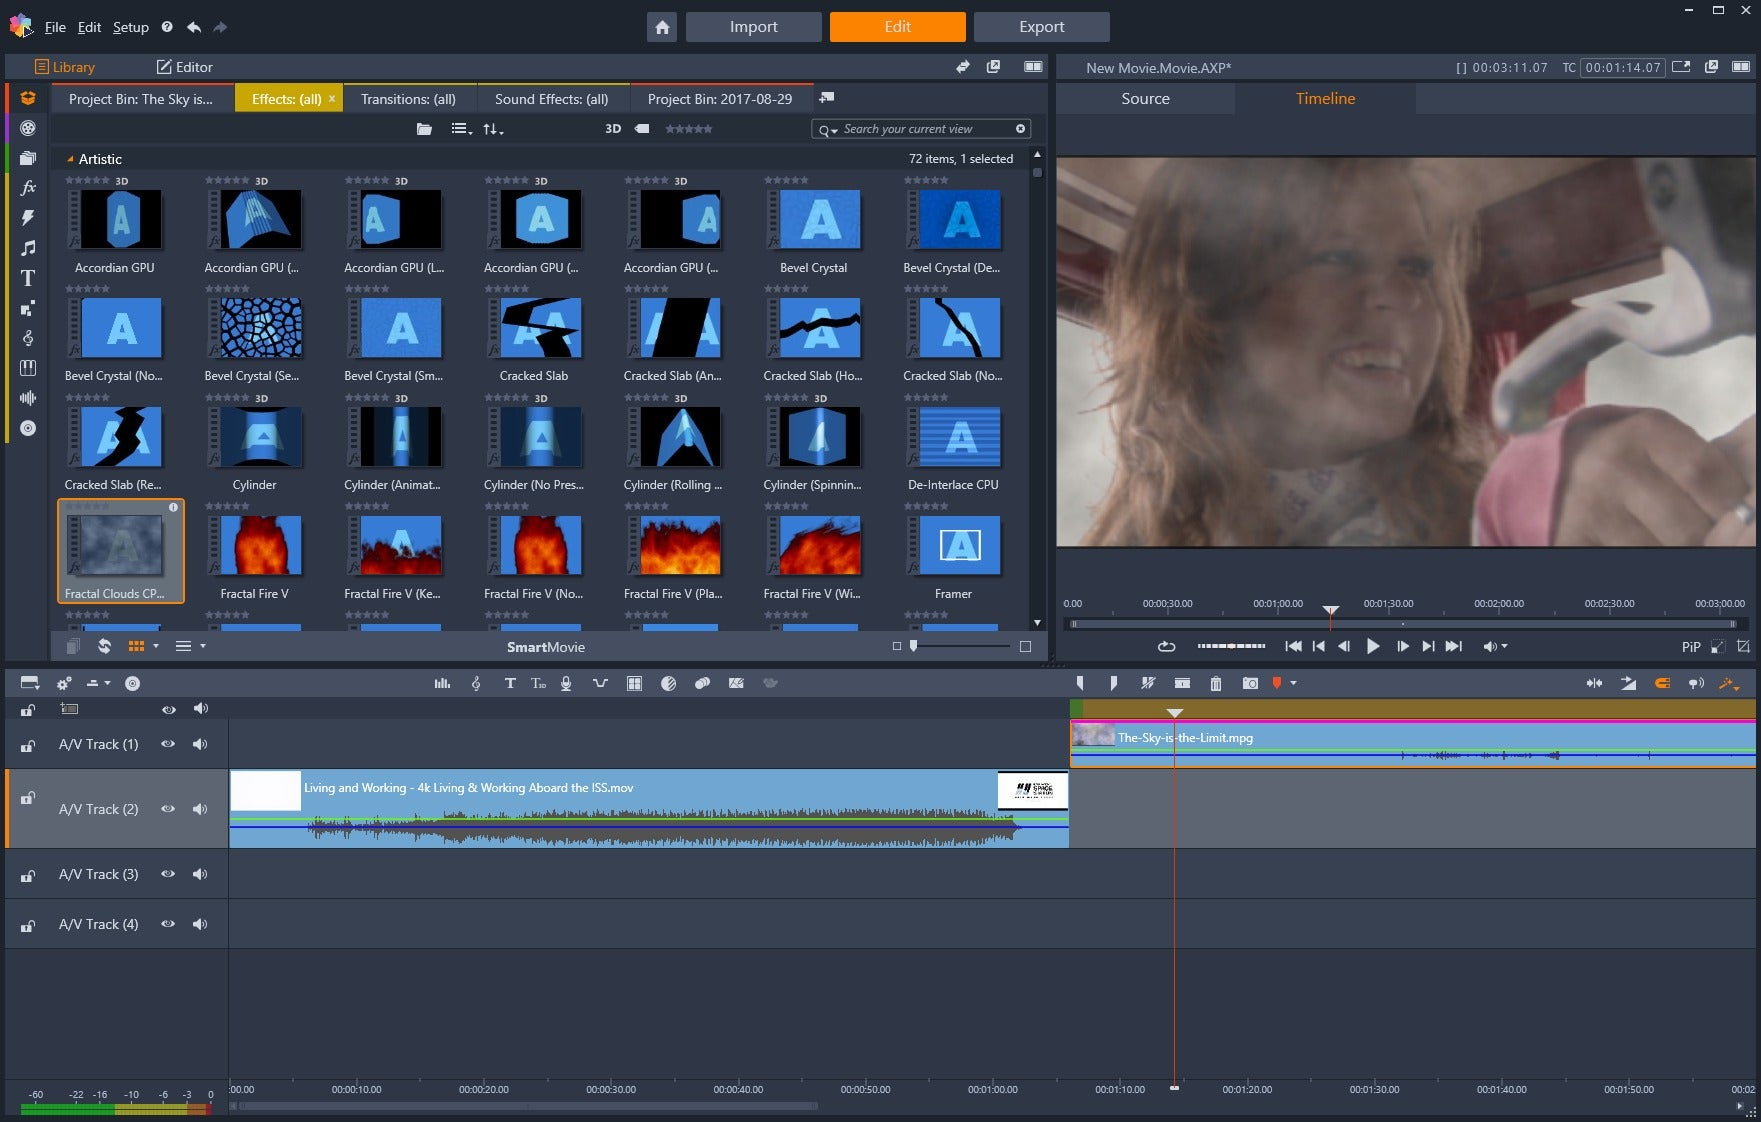 Pinnacle Studio video editing software & screen recorder